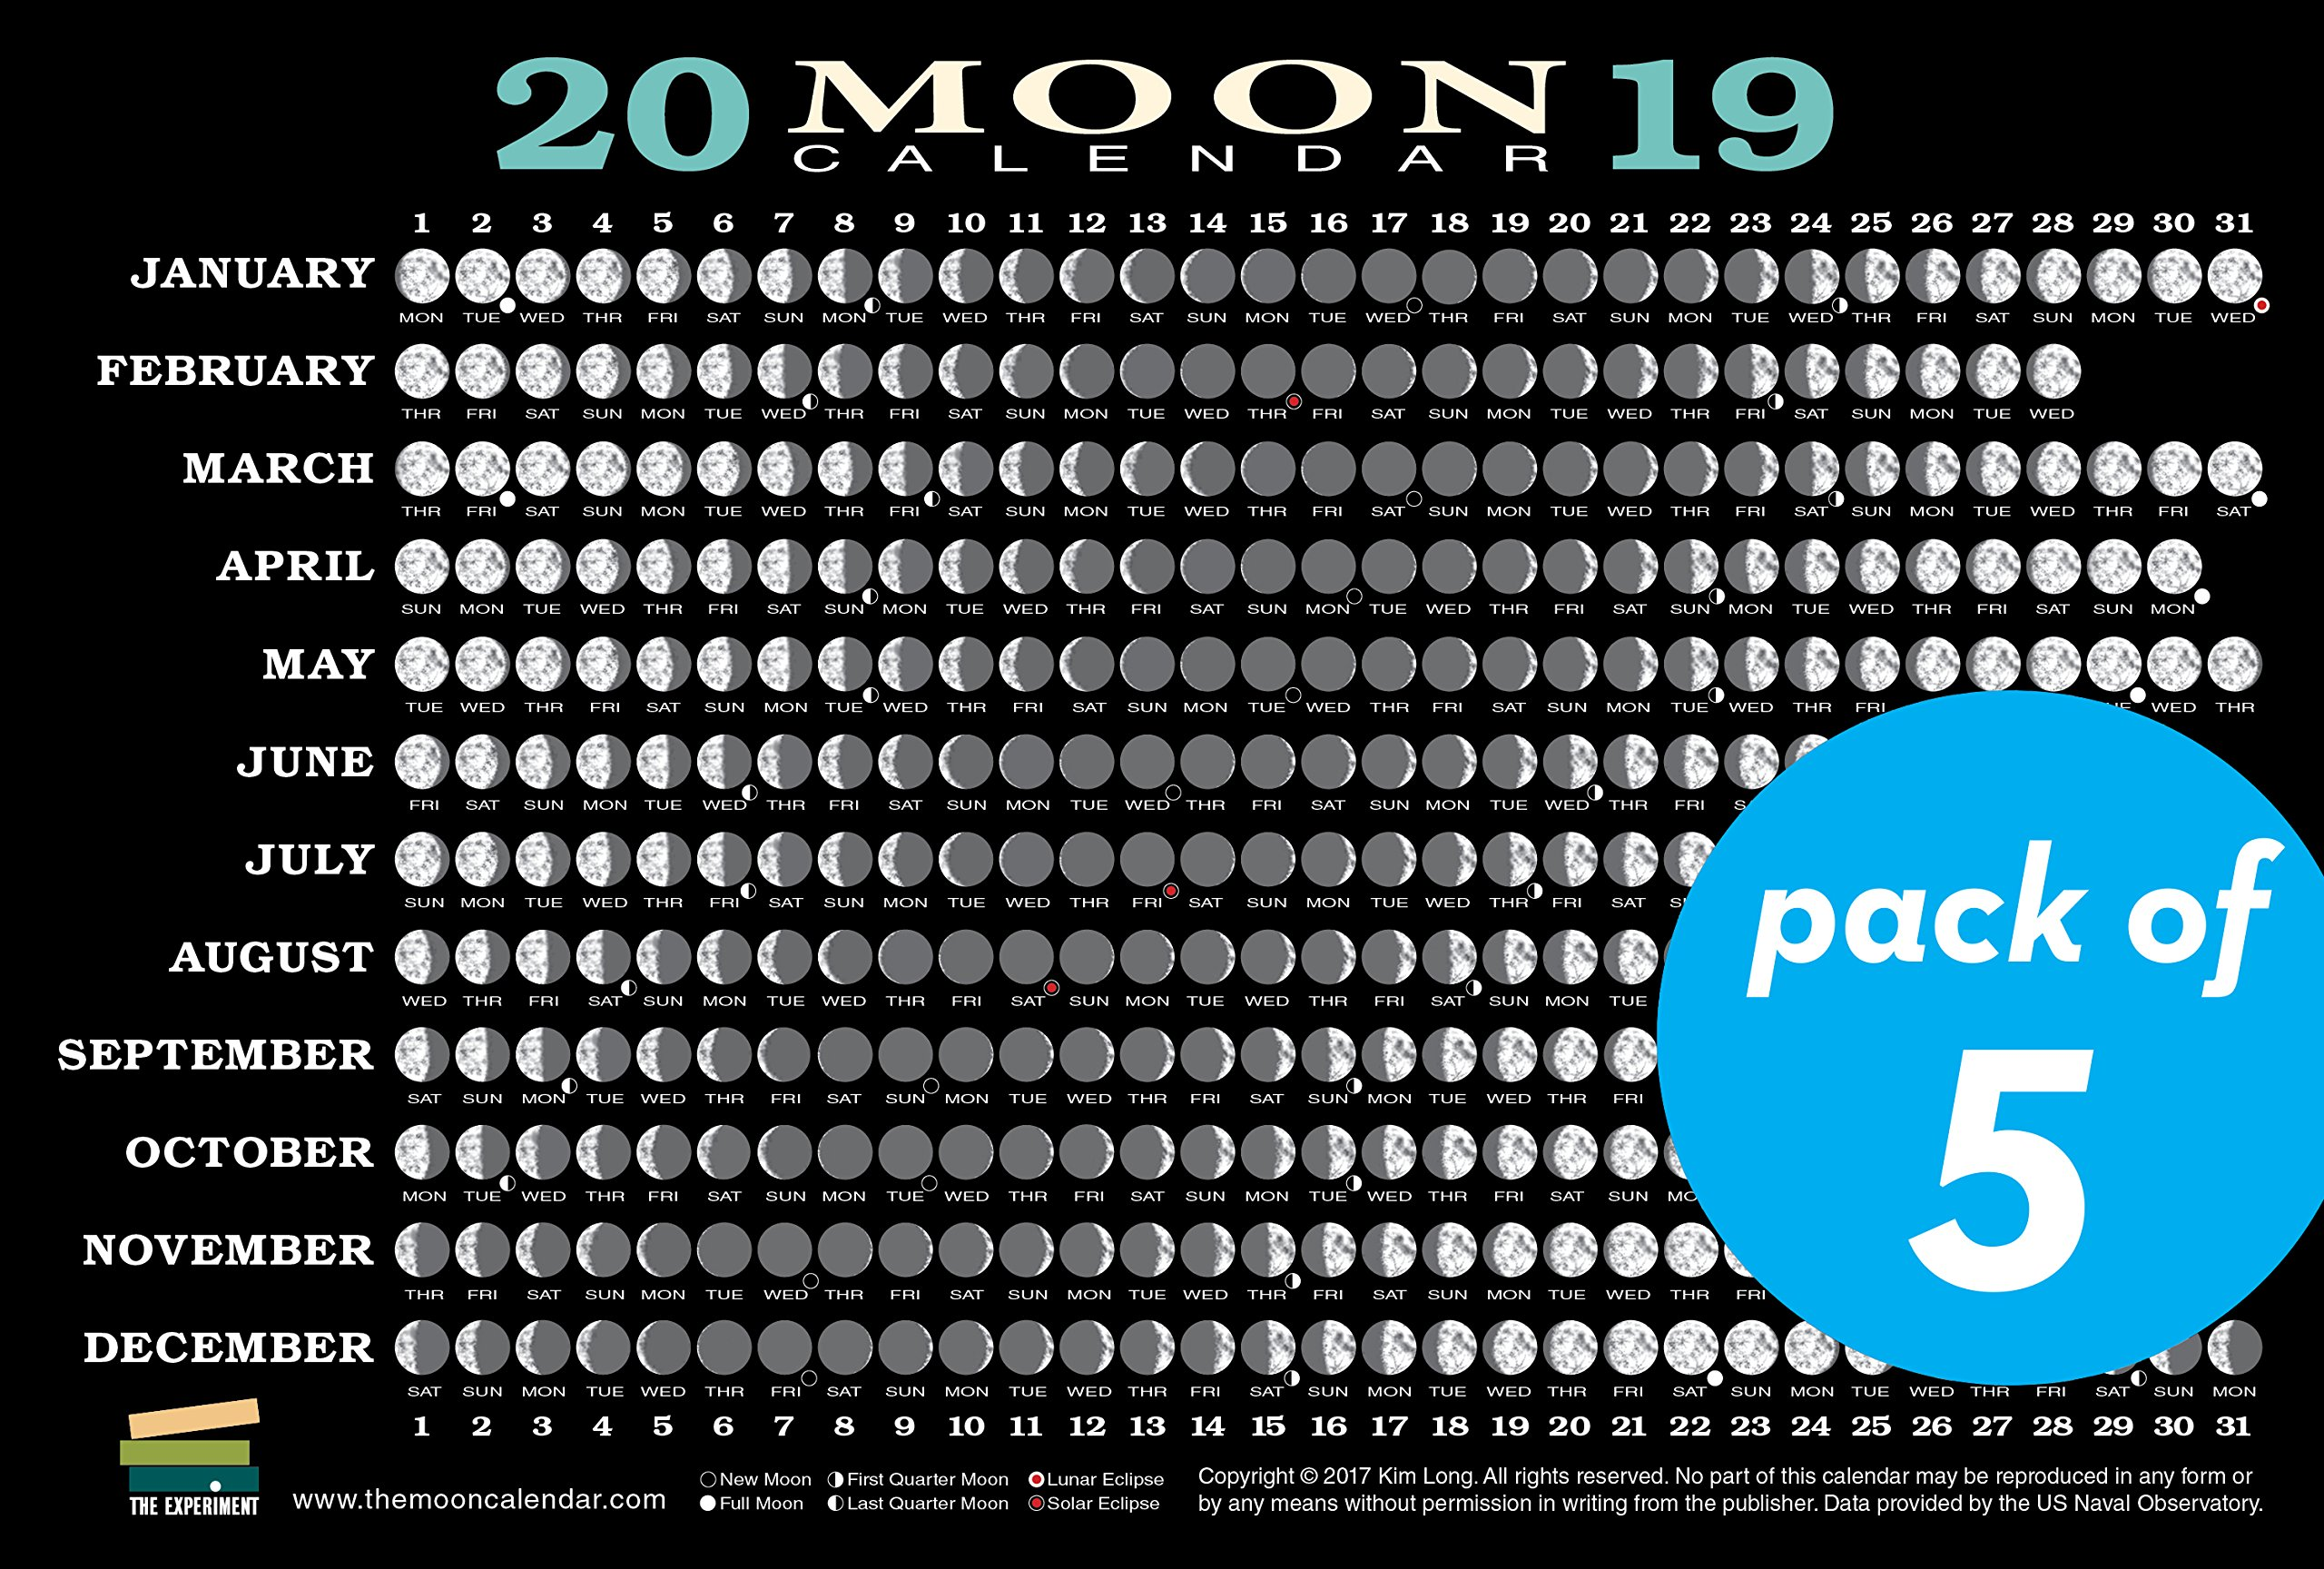 2019 Phases Of The Moon Calendar 2019 Moon Calendar Card (5 pack): Lunar Phases, Eclipses, and More